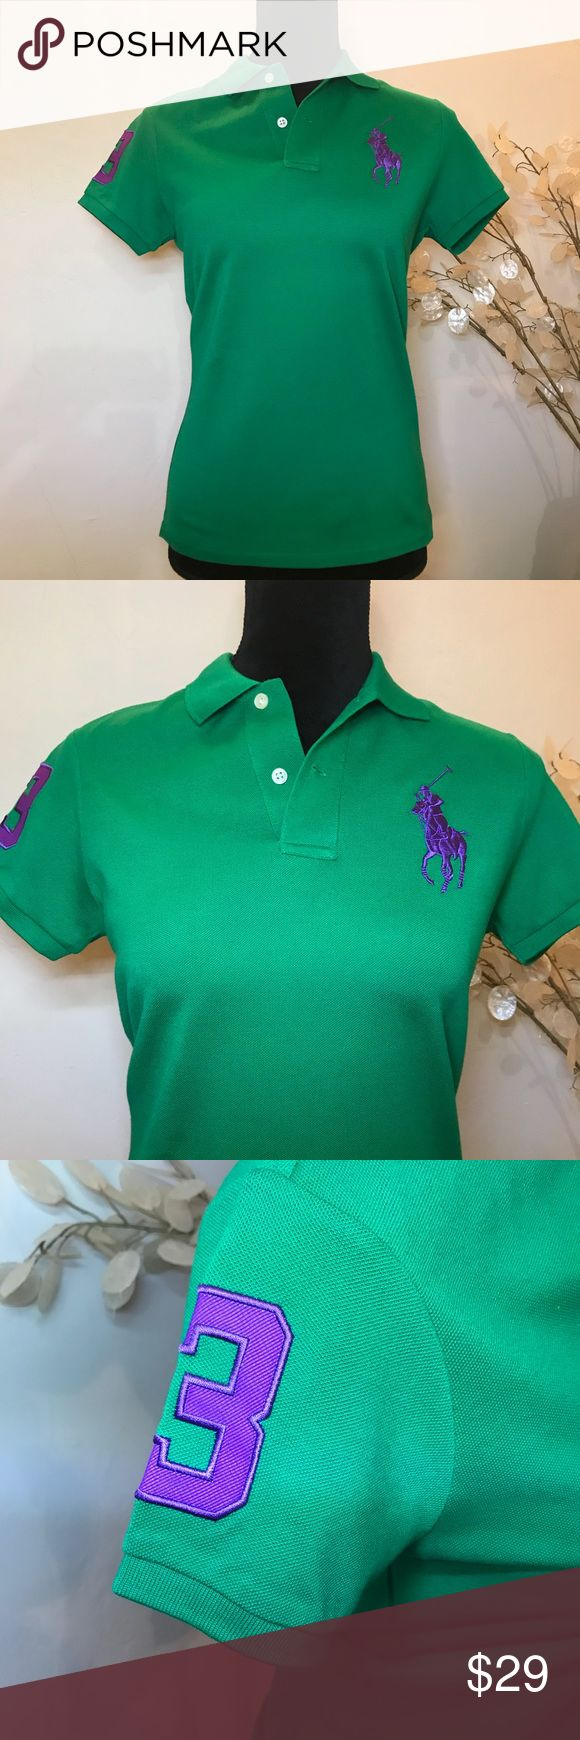 Ralph Laure - Slim Fit Stretch Polo Shirt Polo Ralph Lauren - Slim Fit Stretch Big Pony Polo Shirt - Dark Green Ralph Lauren Tops Tees - Short Sleeve